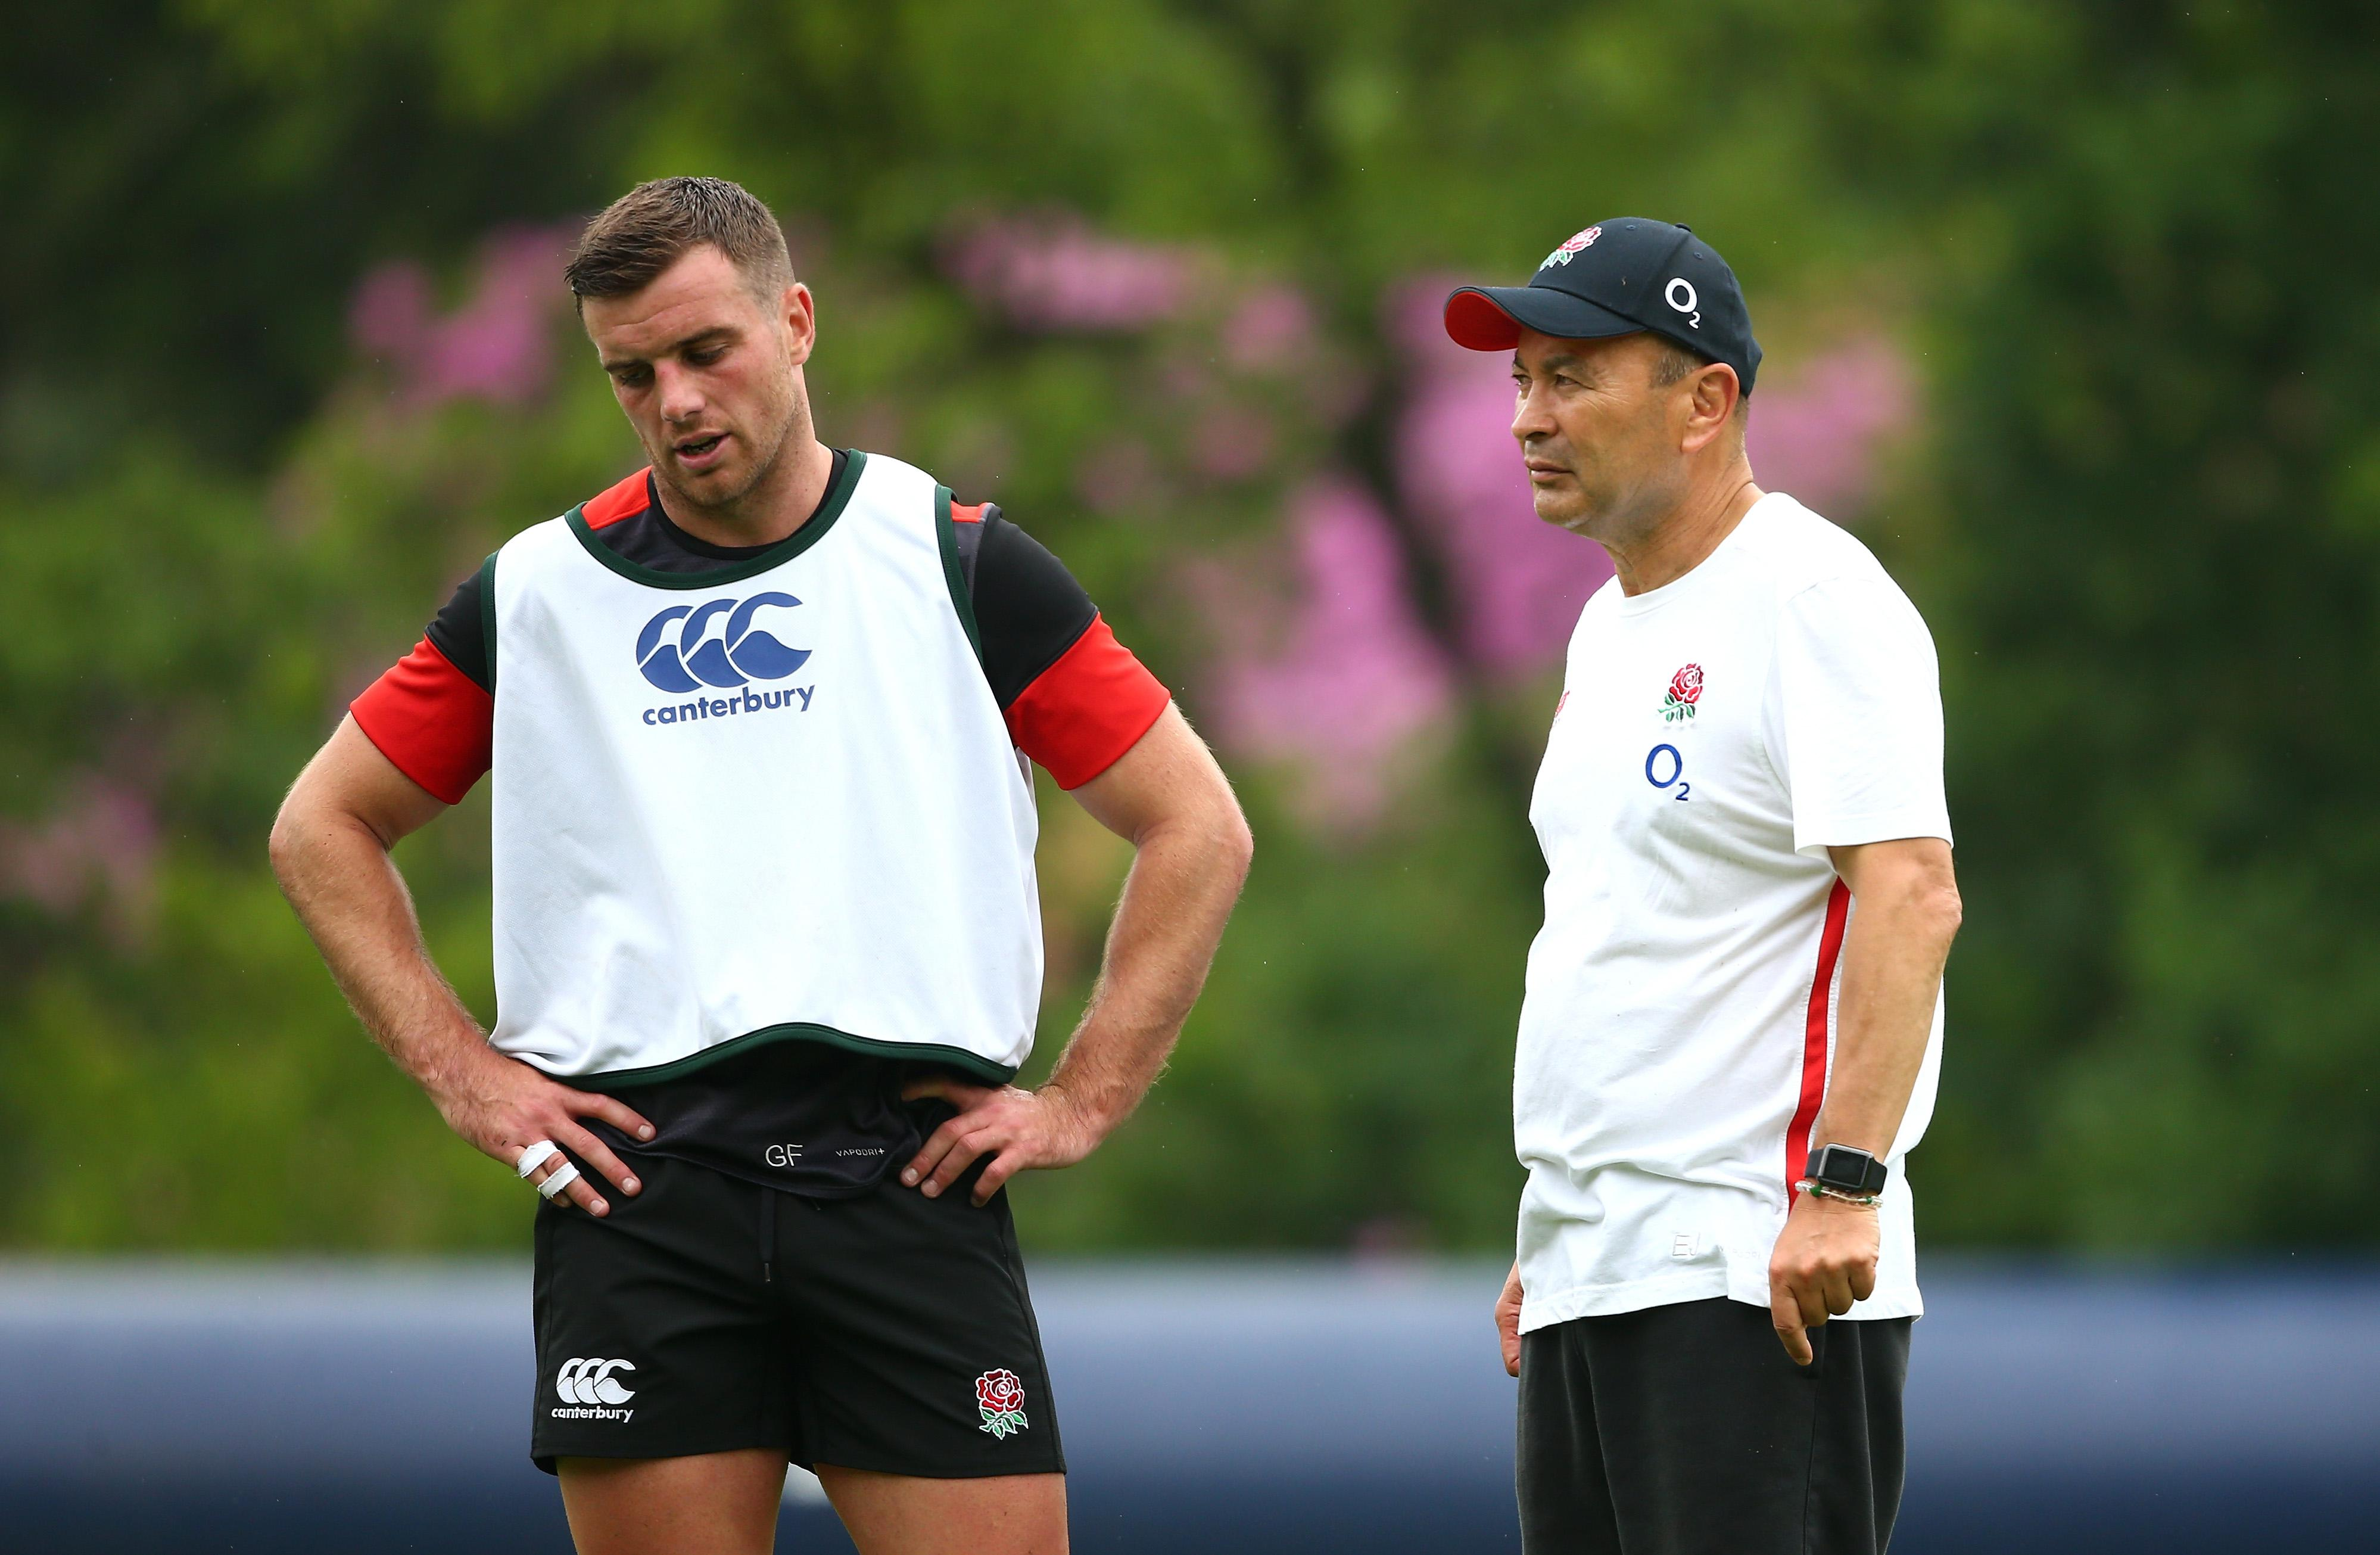 Ford doesn't always start games under England coach Eddie Jones but says he's made peace with his changing role in the team